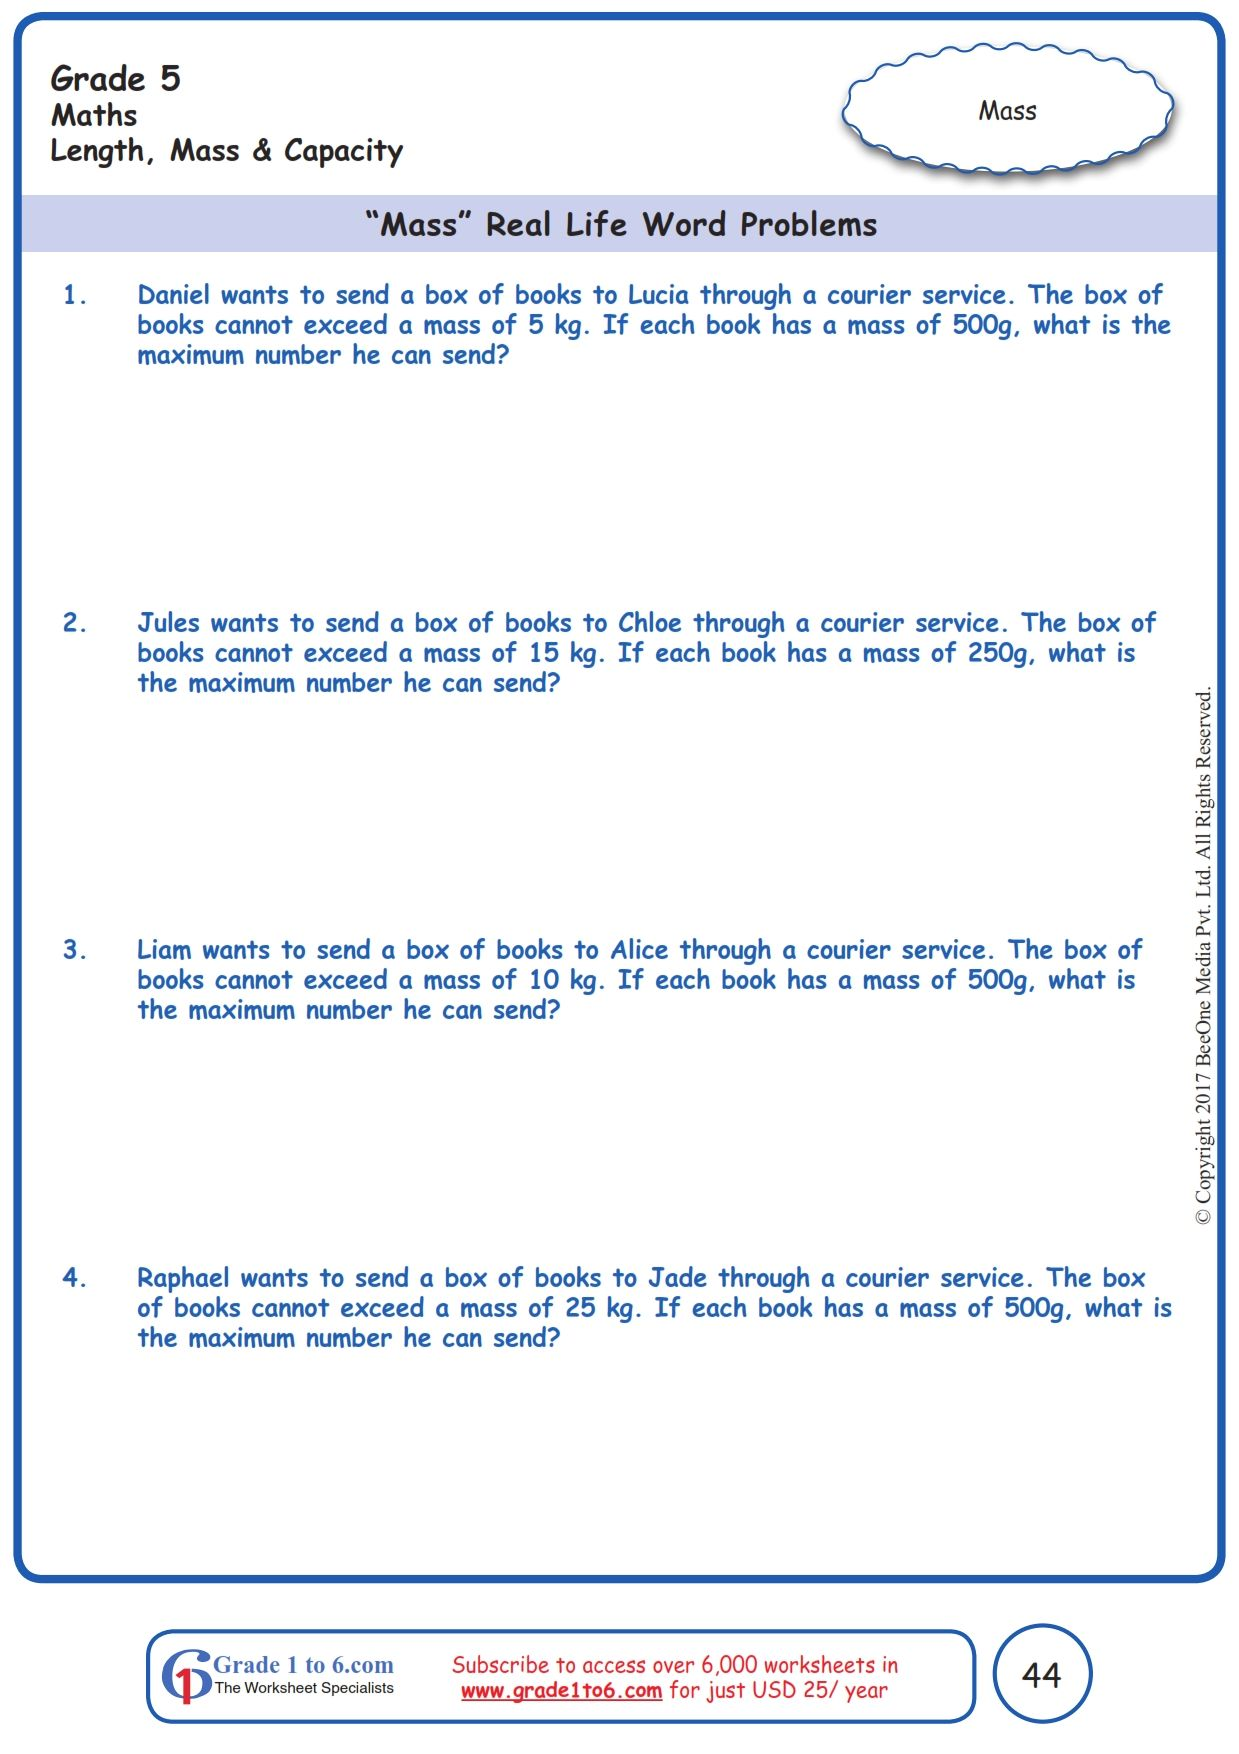 Worksheet Grade 5 Math Mass Real Life Word Problems In